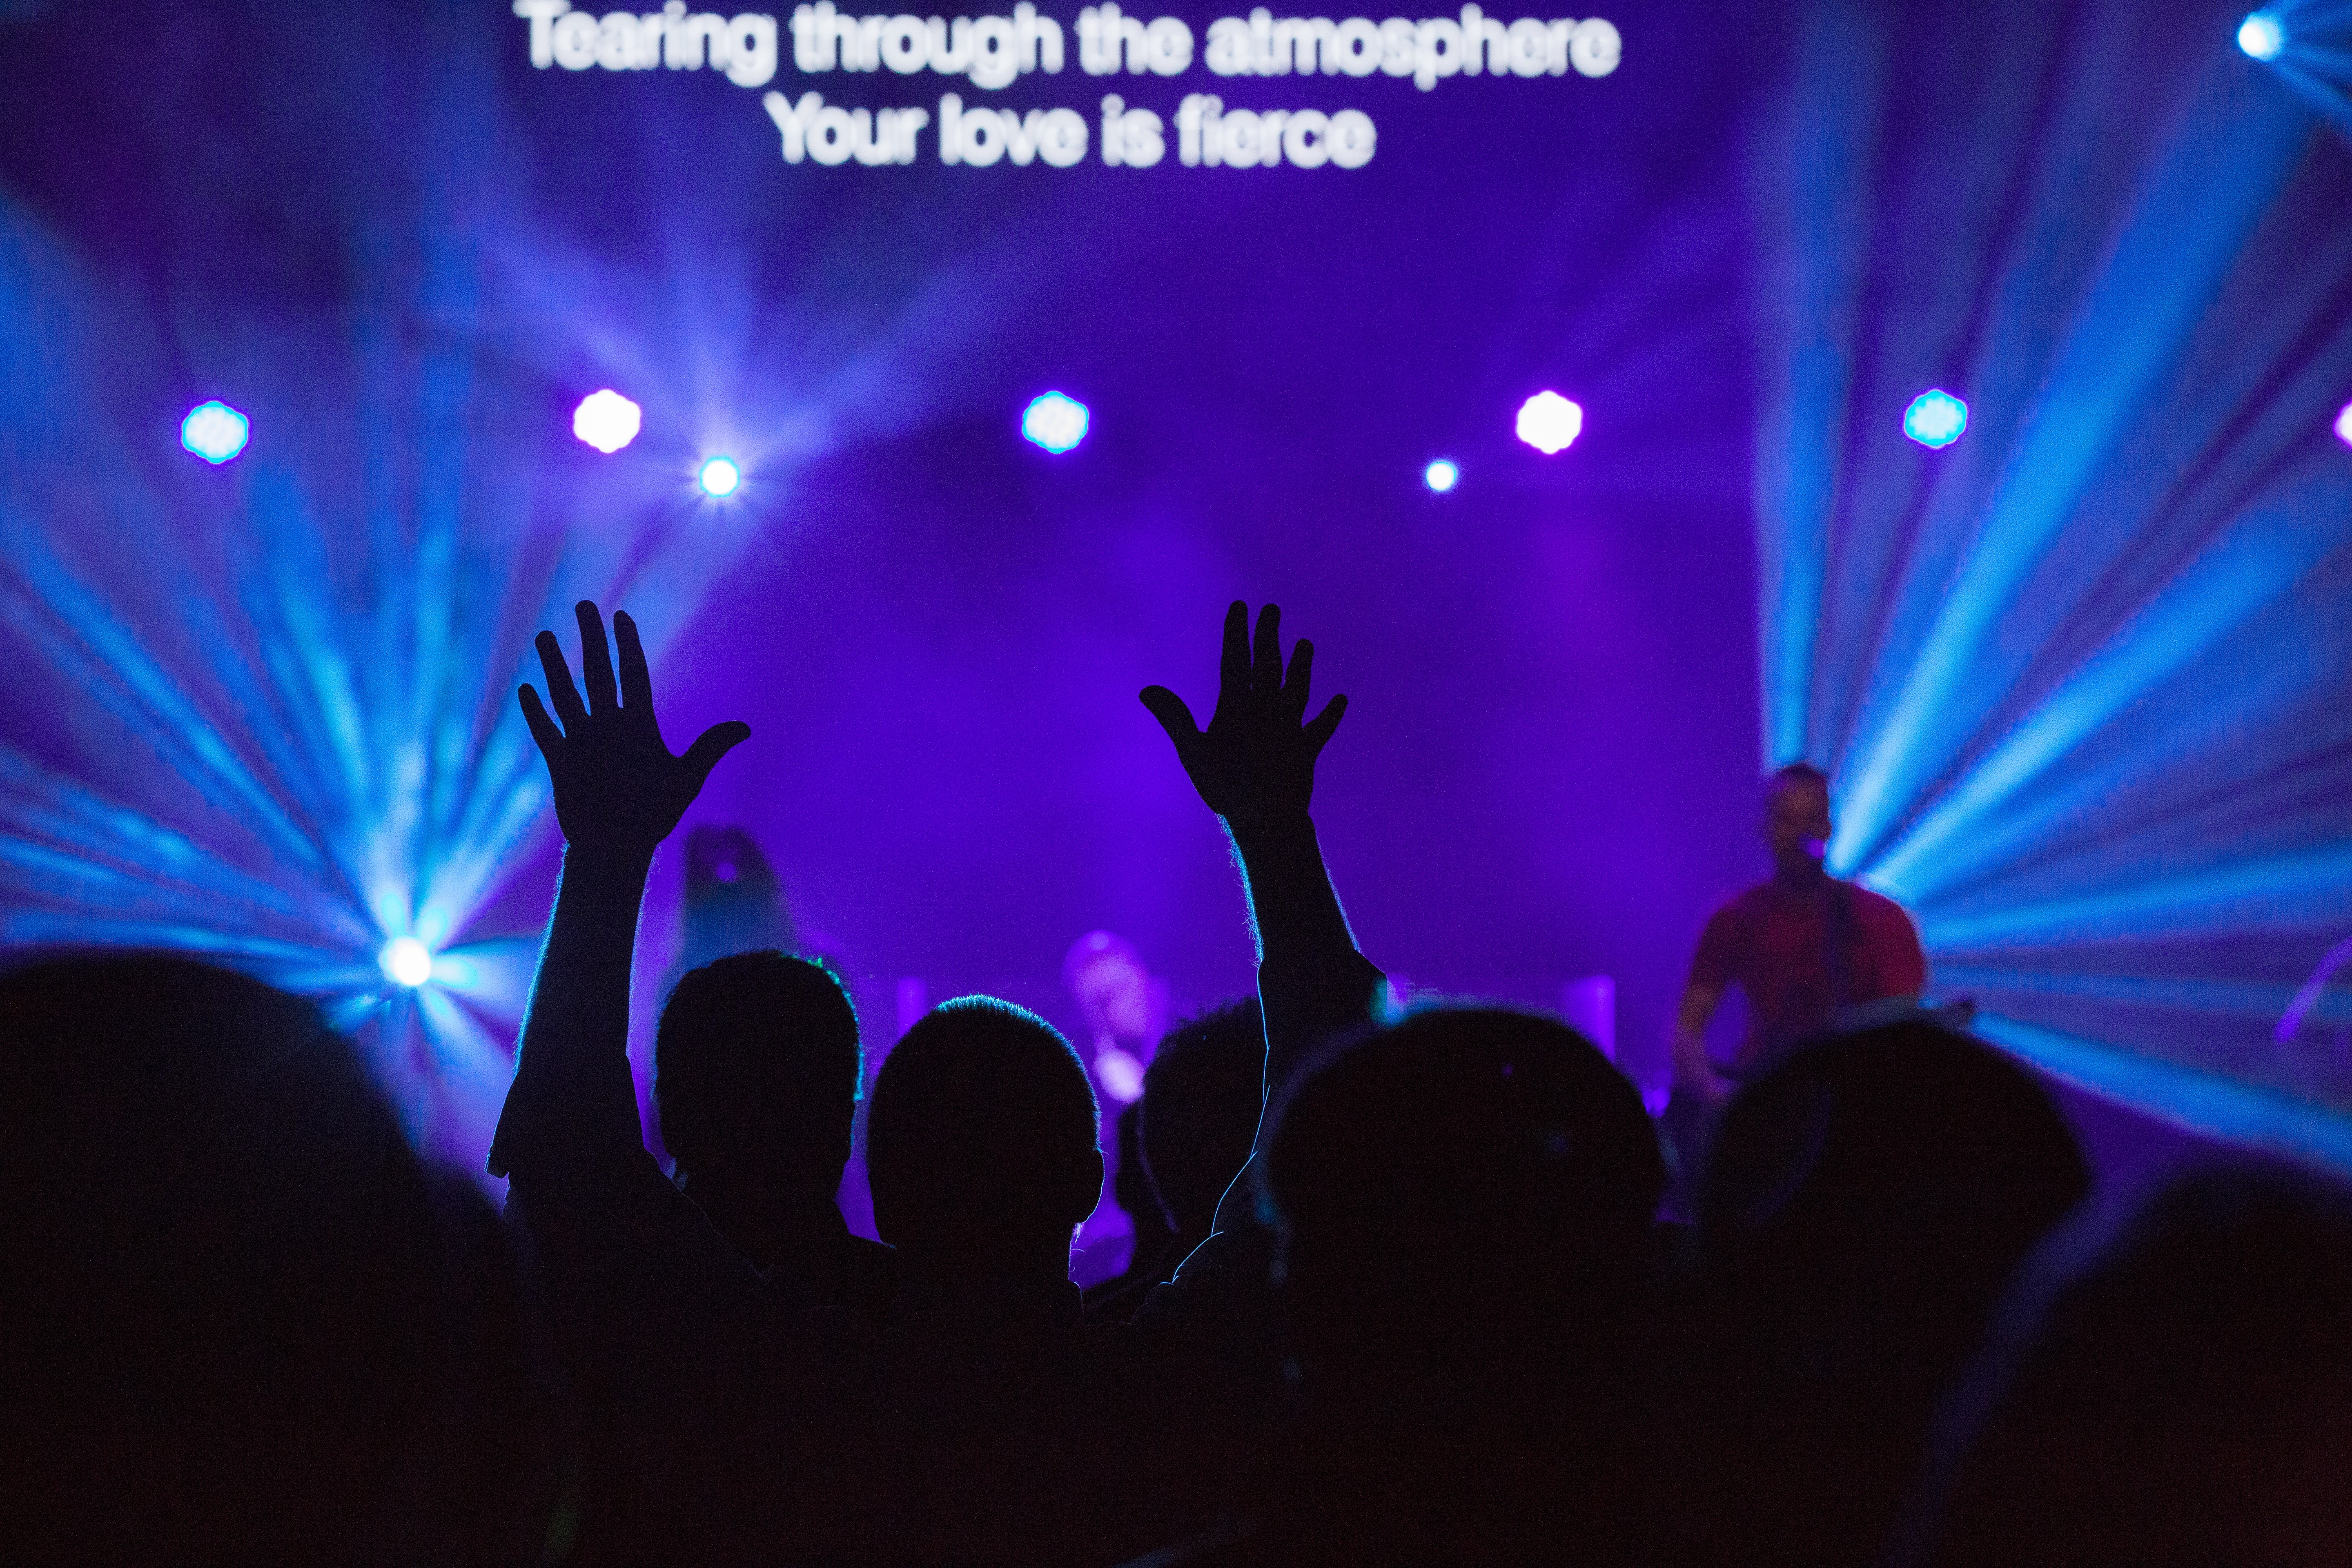 Photo of a worship event by Bill Hamway on Unsplash